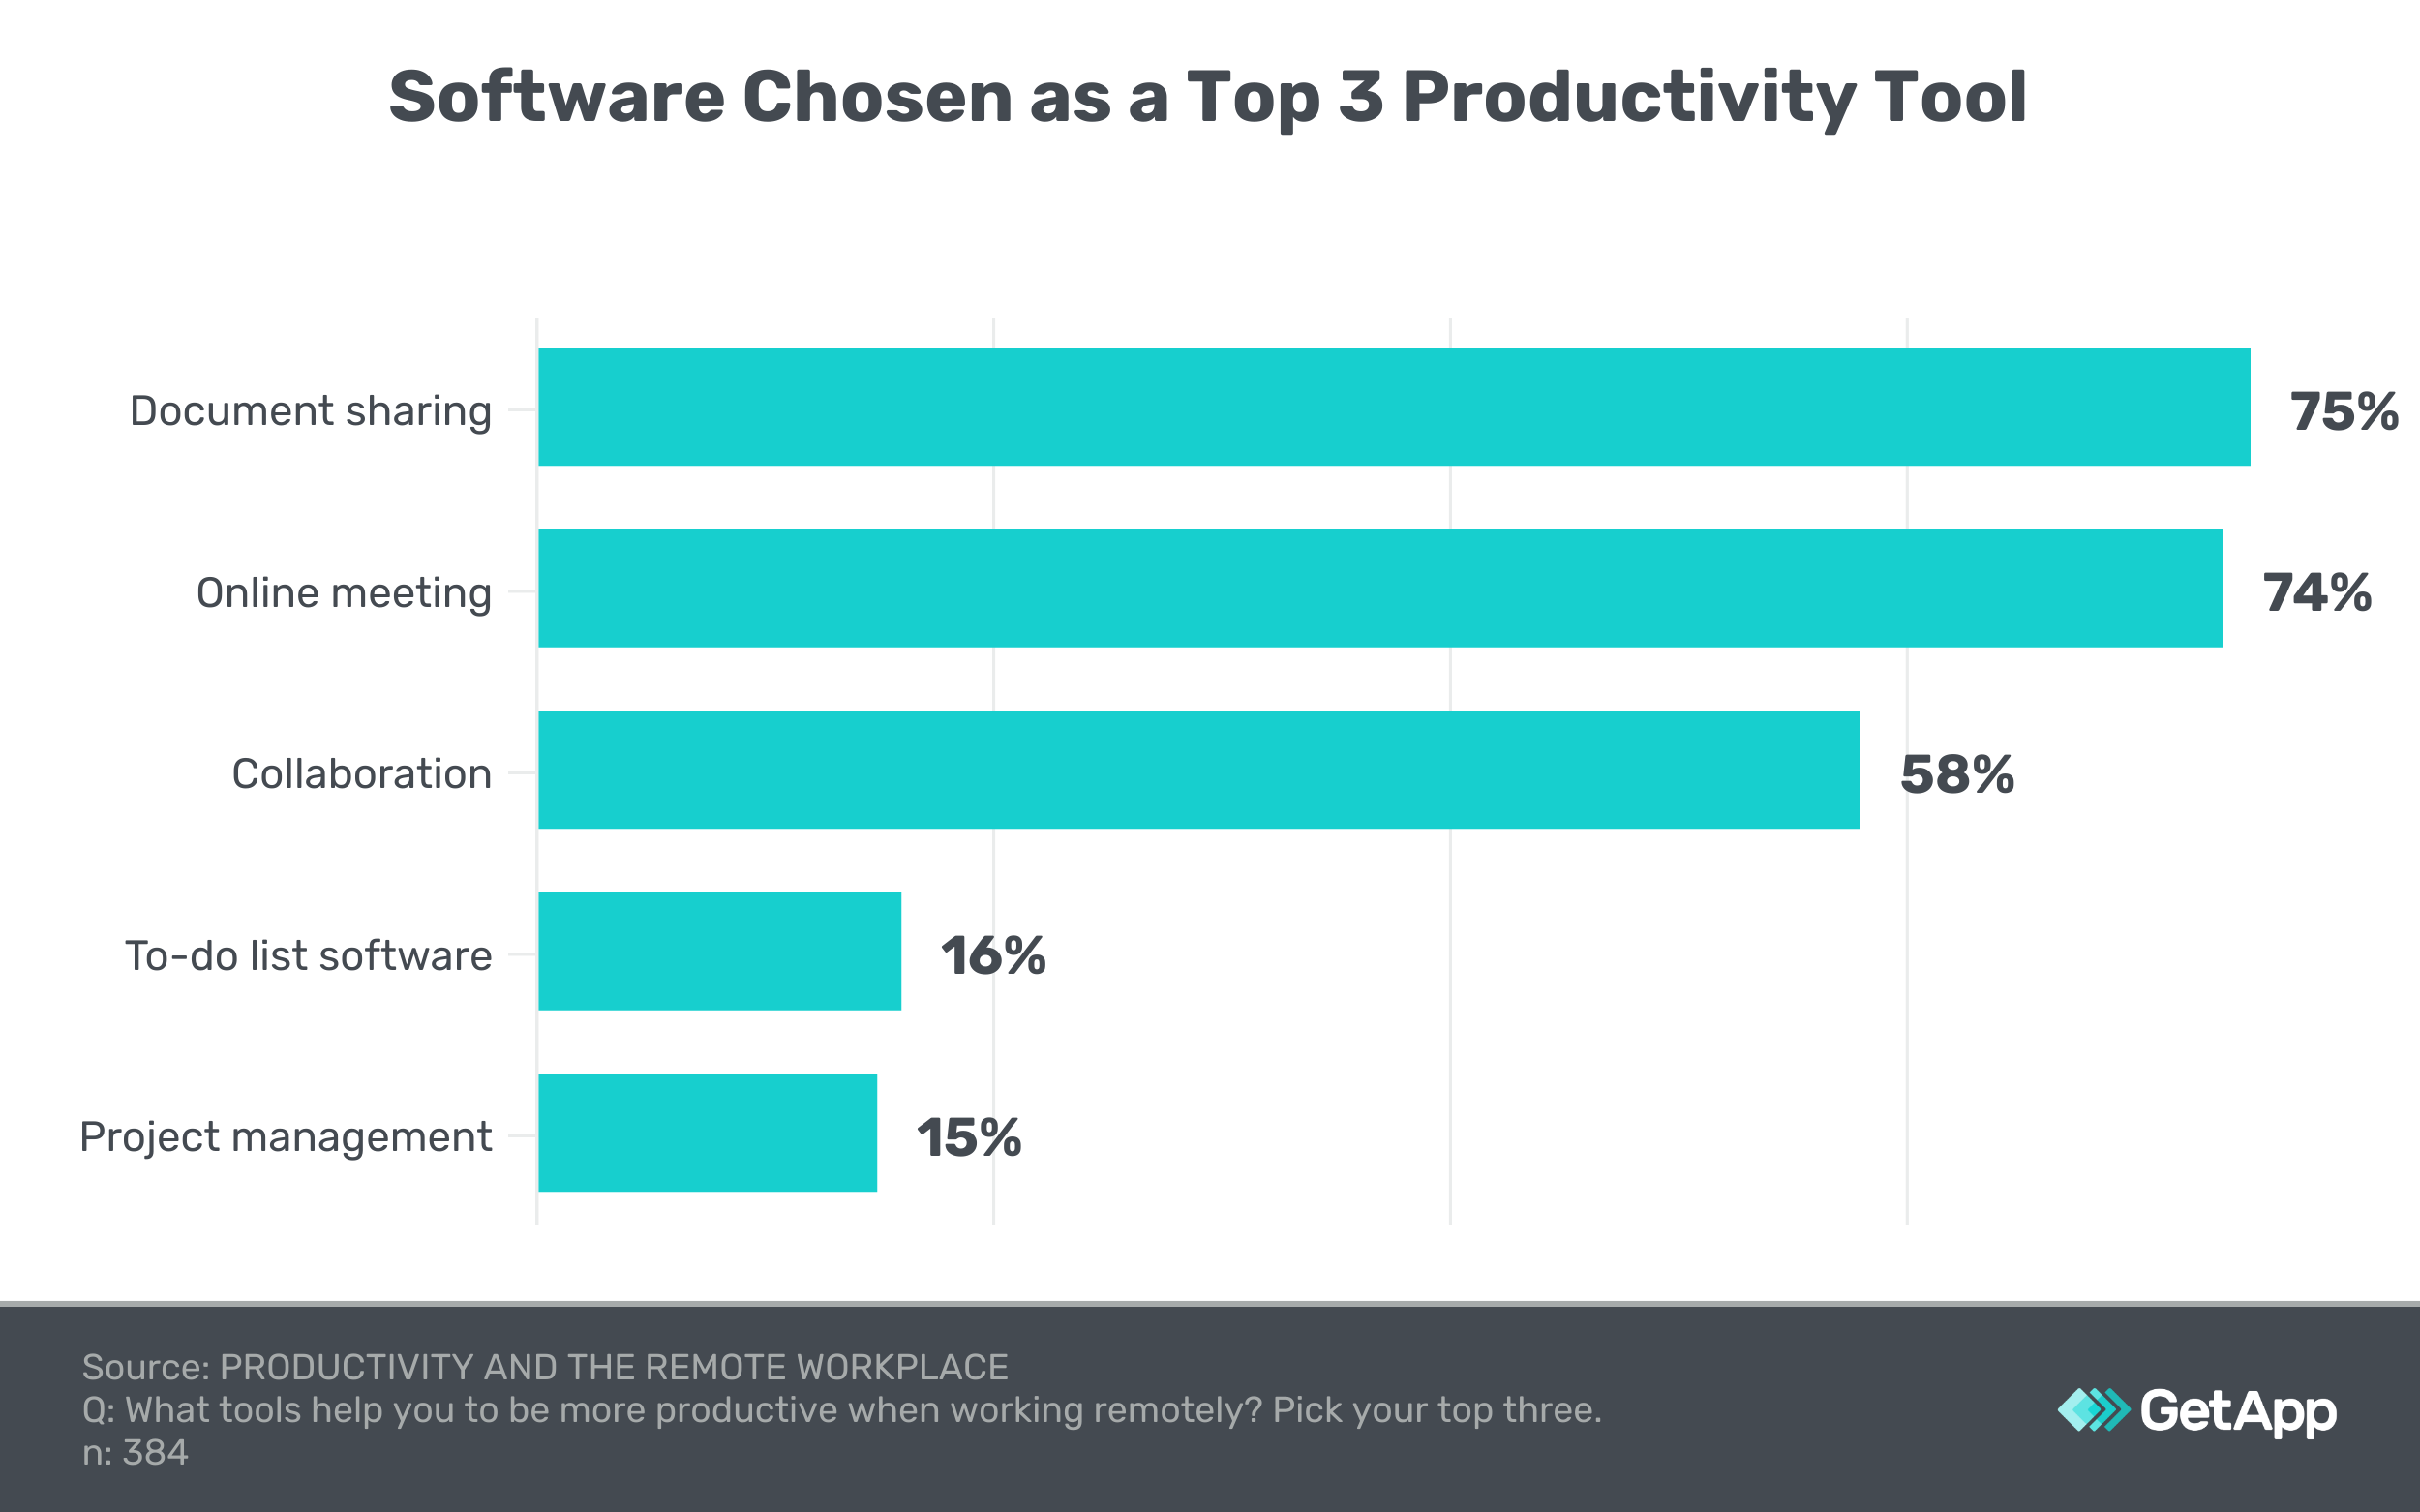 popular software for work from home productivity